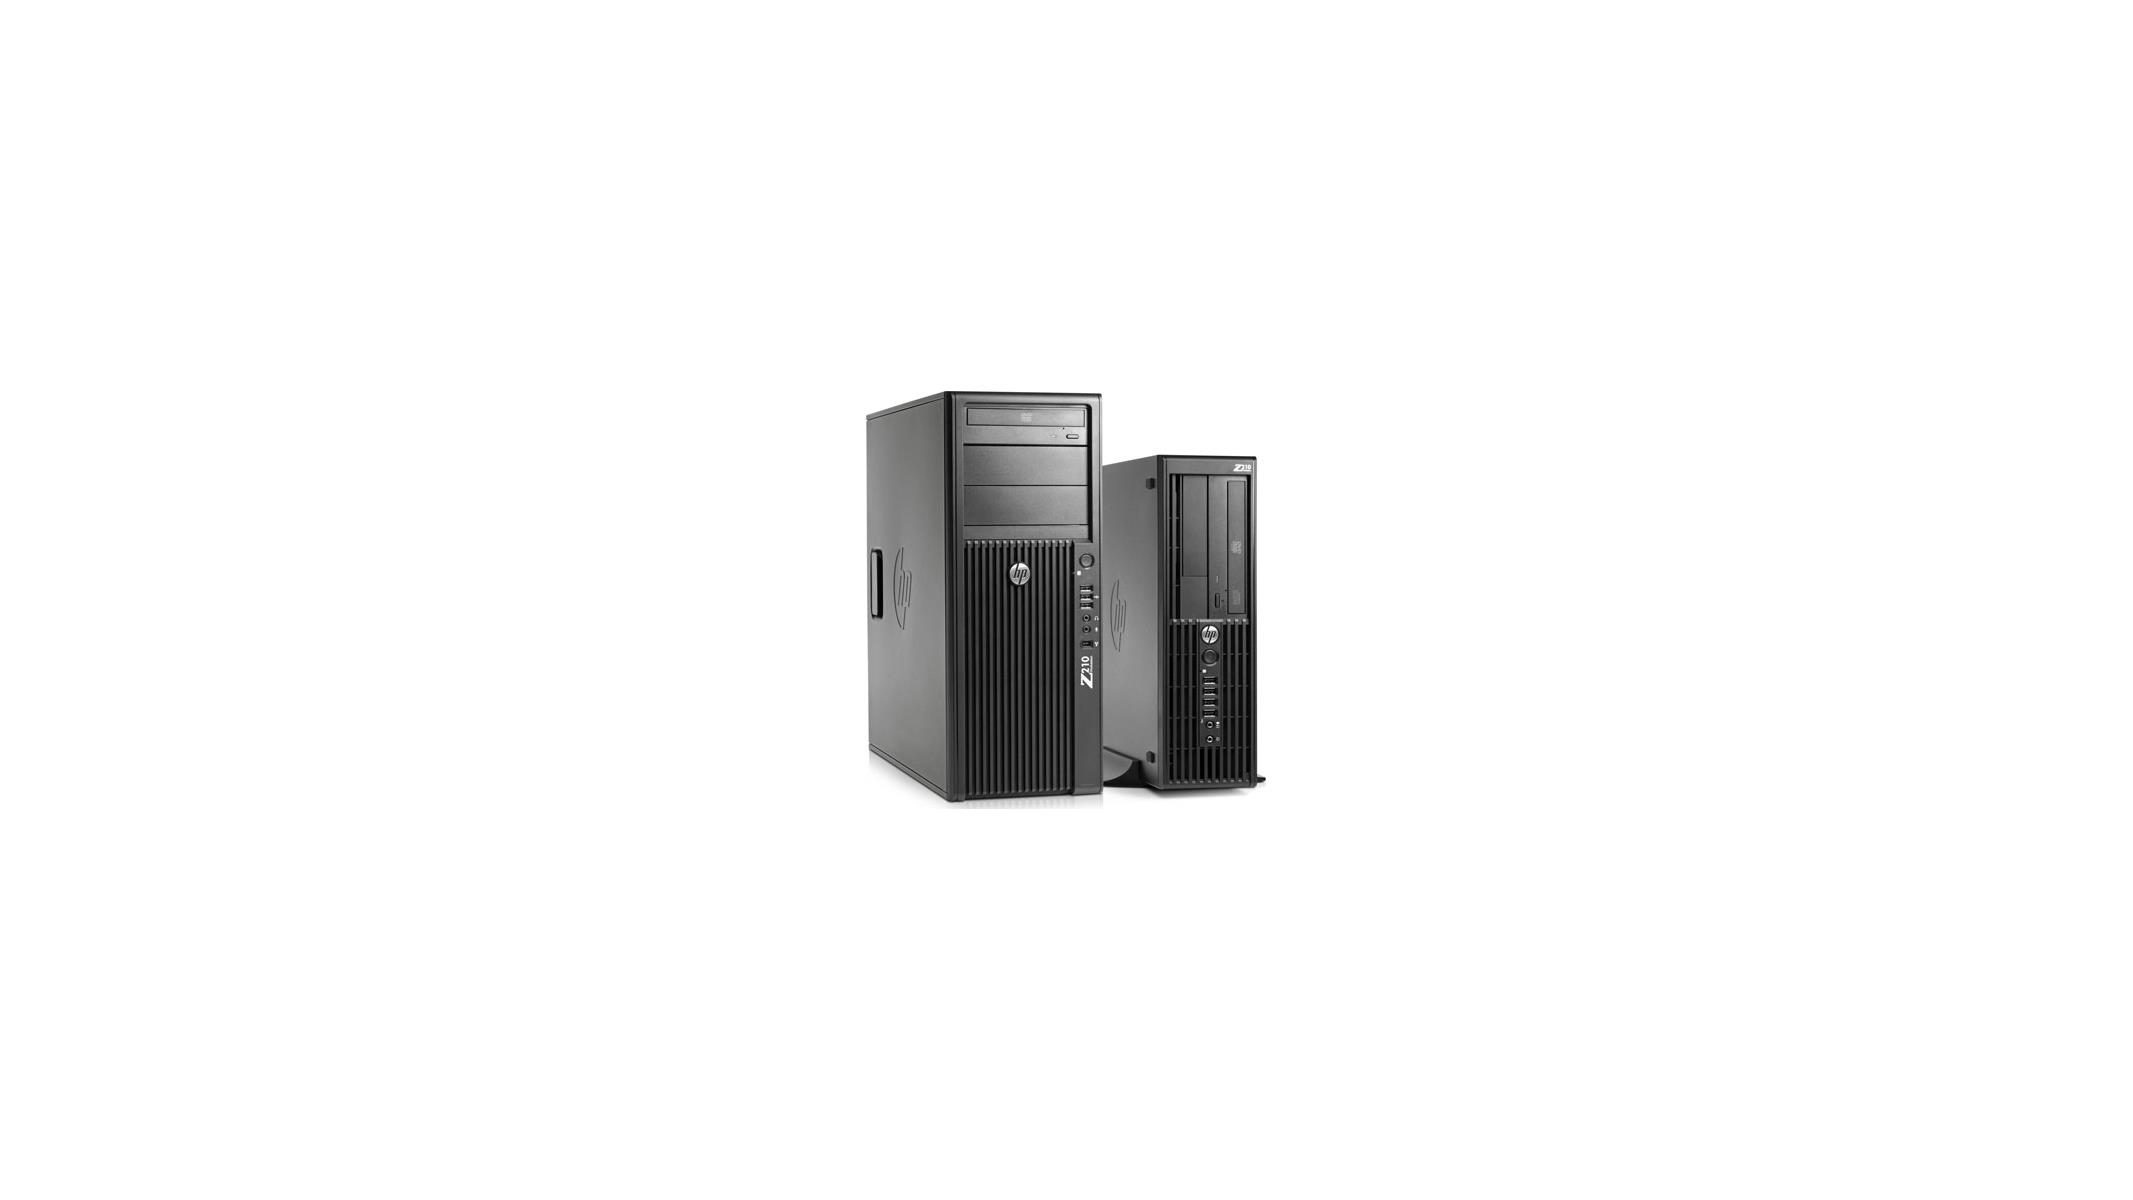 HP Targets Professionals With New Z210 Workstations